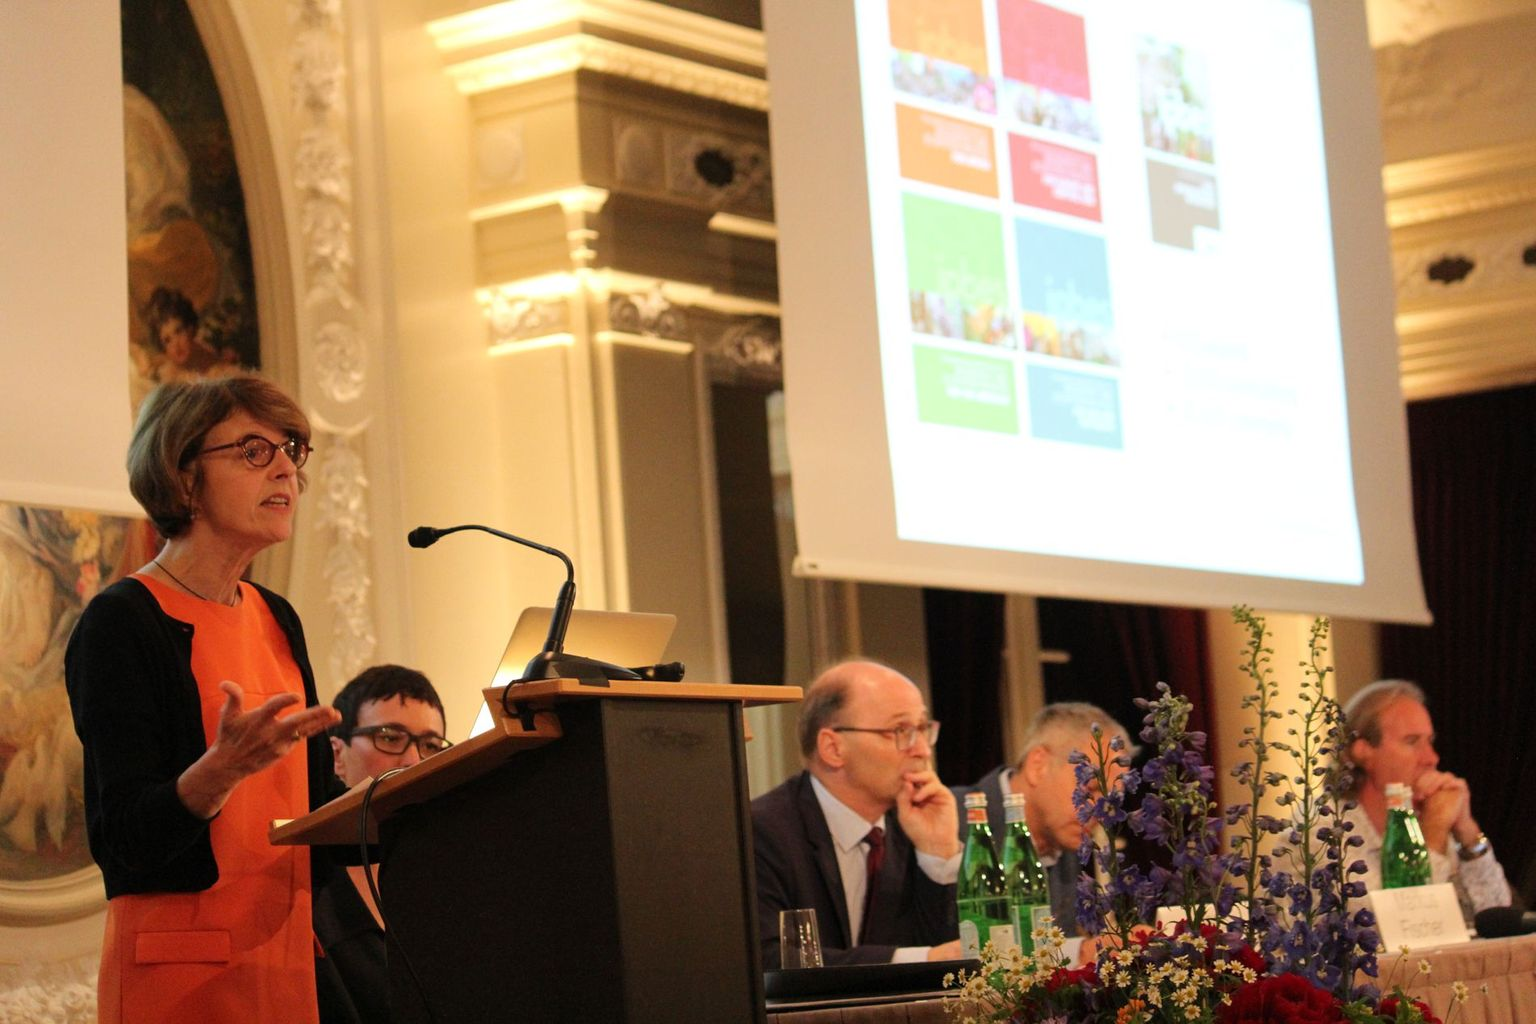 Anne Larigauderie, Executive Secretary of IPBES